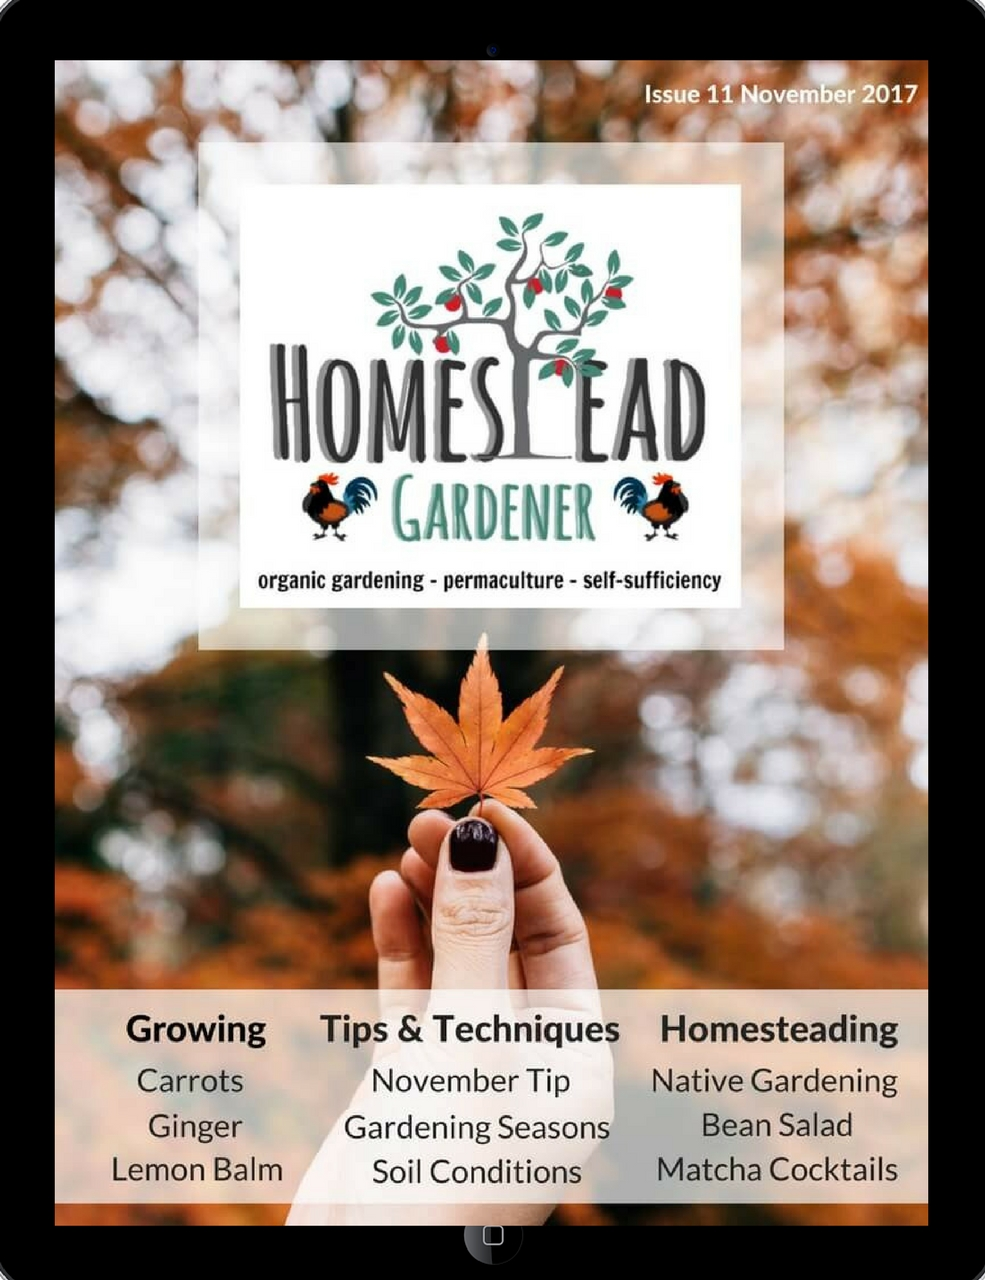 homestead gardener magazine cover Nov 2017